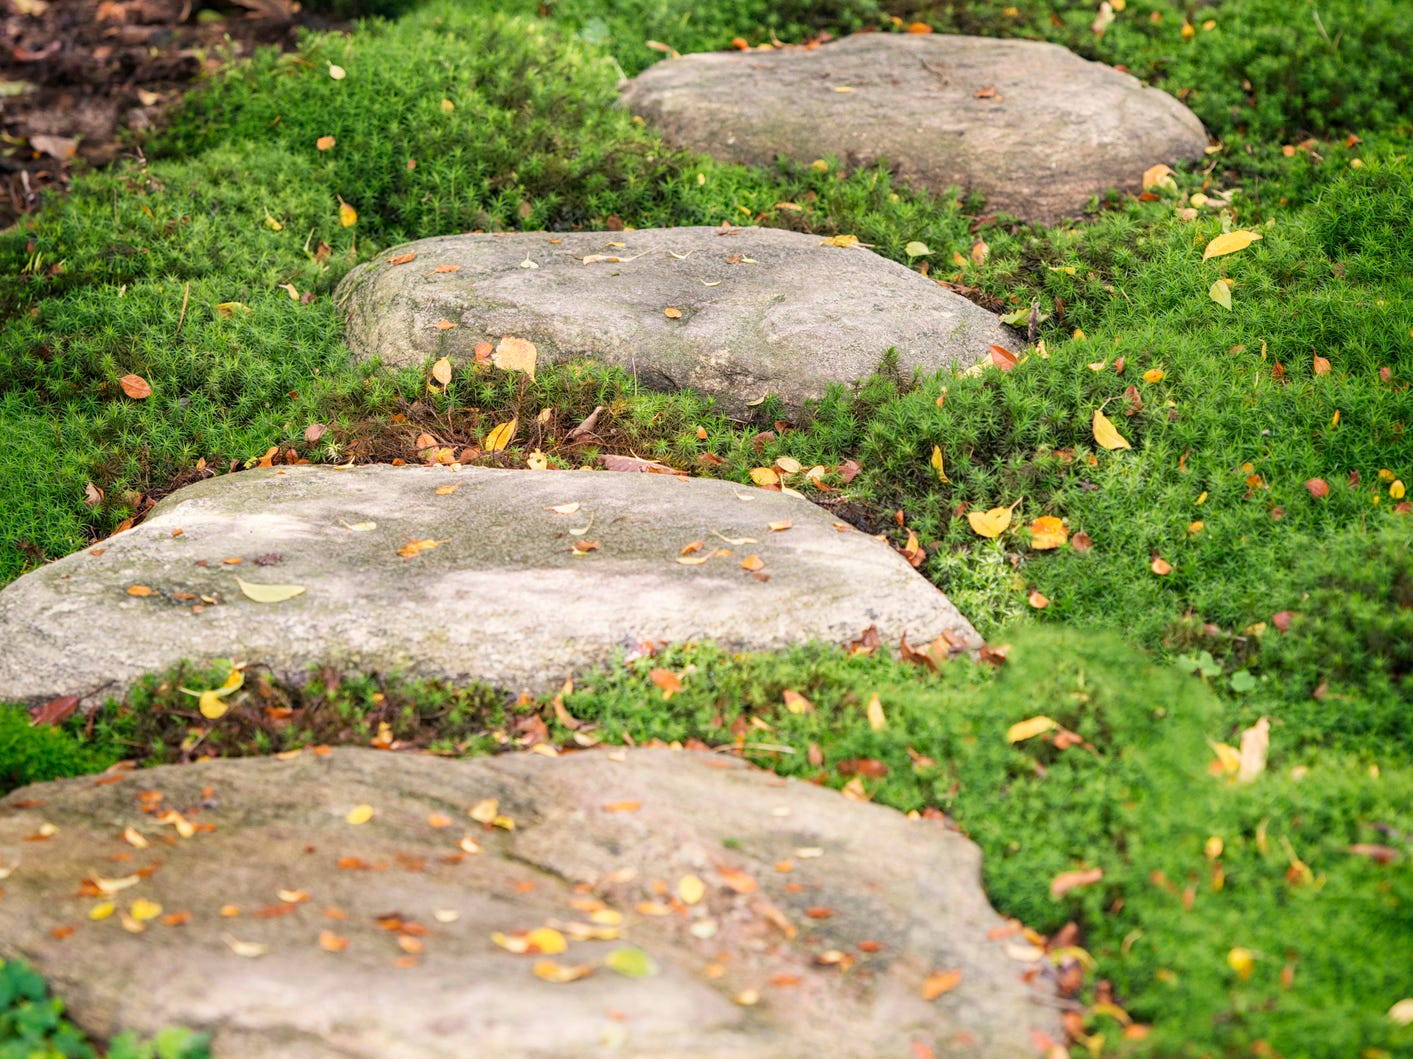 Gardening: Best to care for your landscape, not trample it